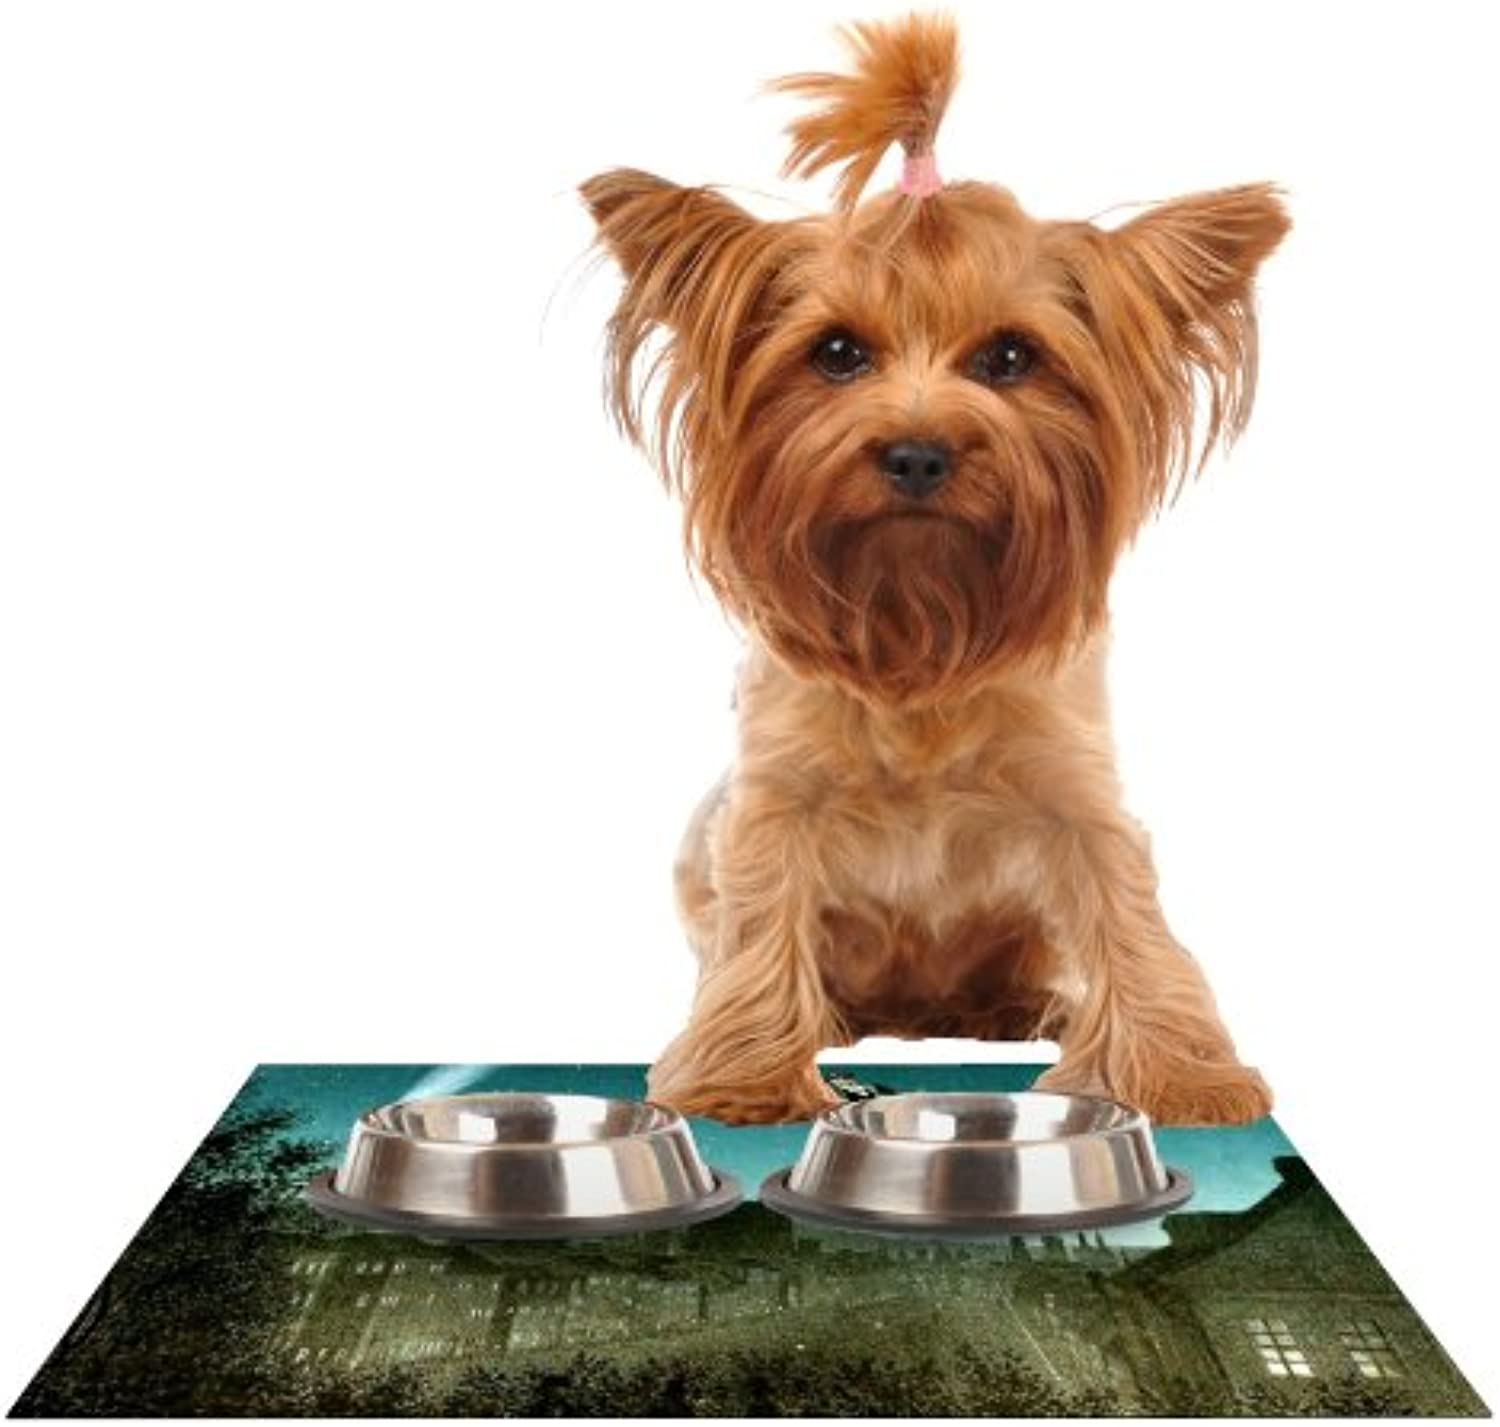 Kess InHouse Suzanne Carter The Departure  Feeding Mat for Pet Bowl, 18 by 13Inch